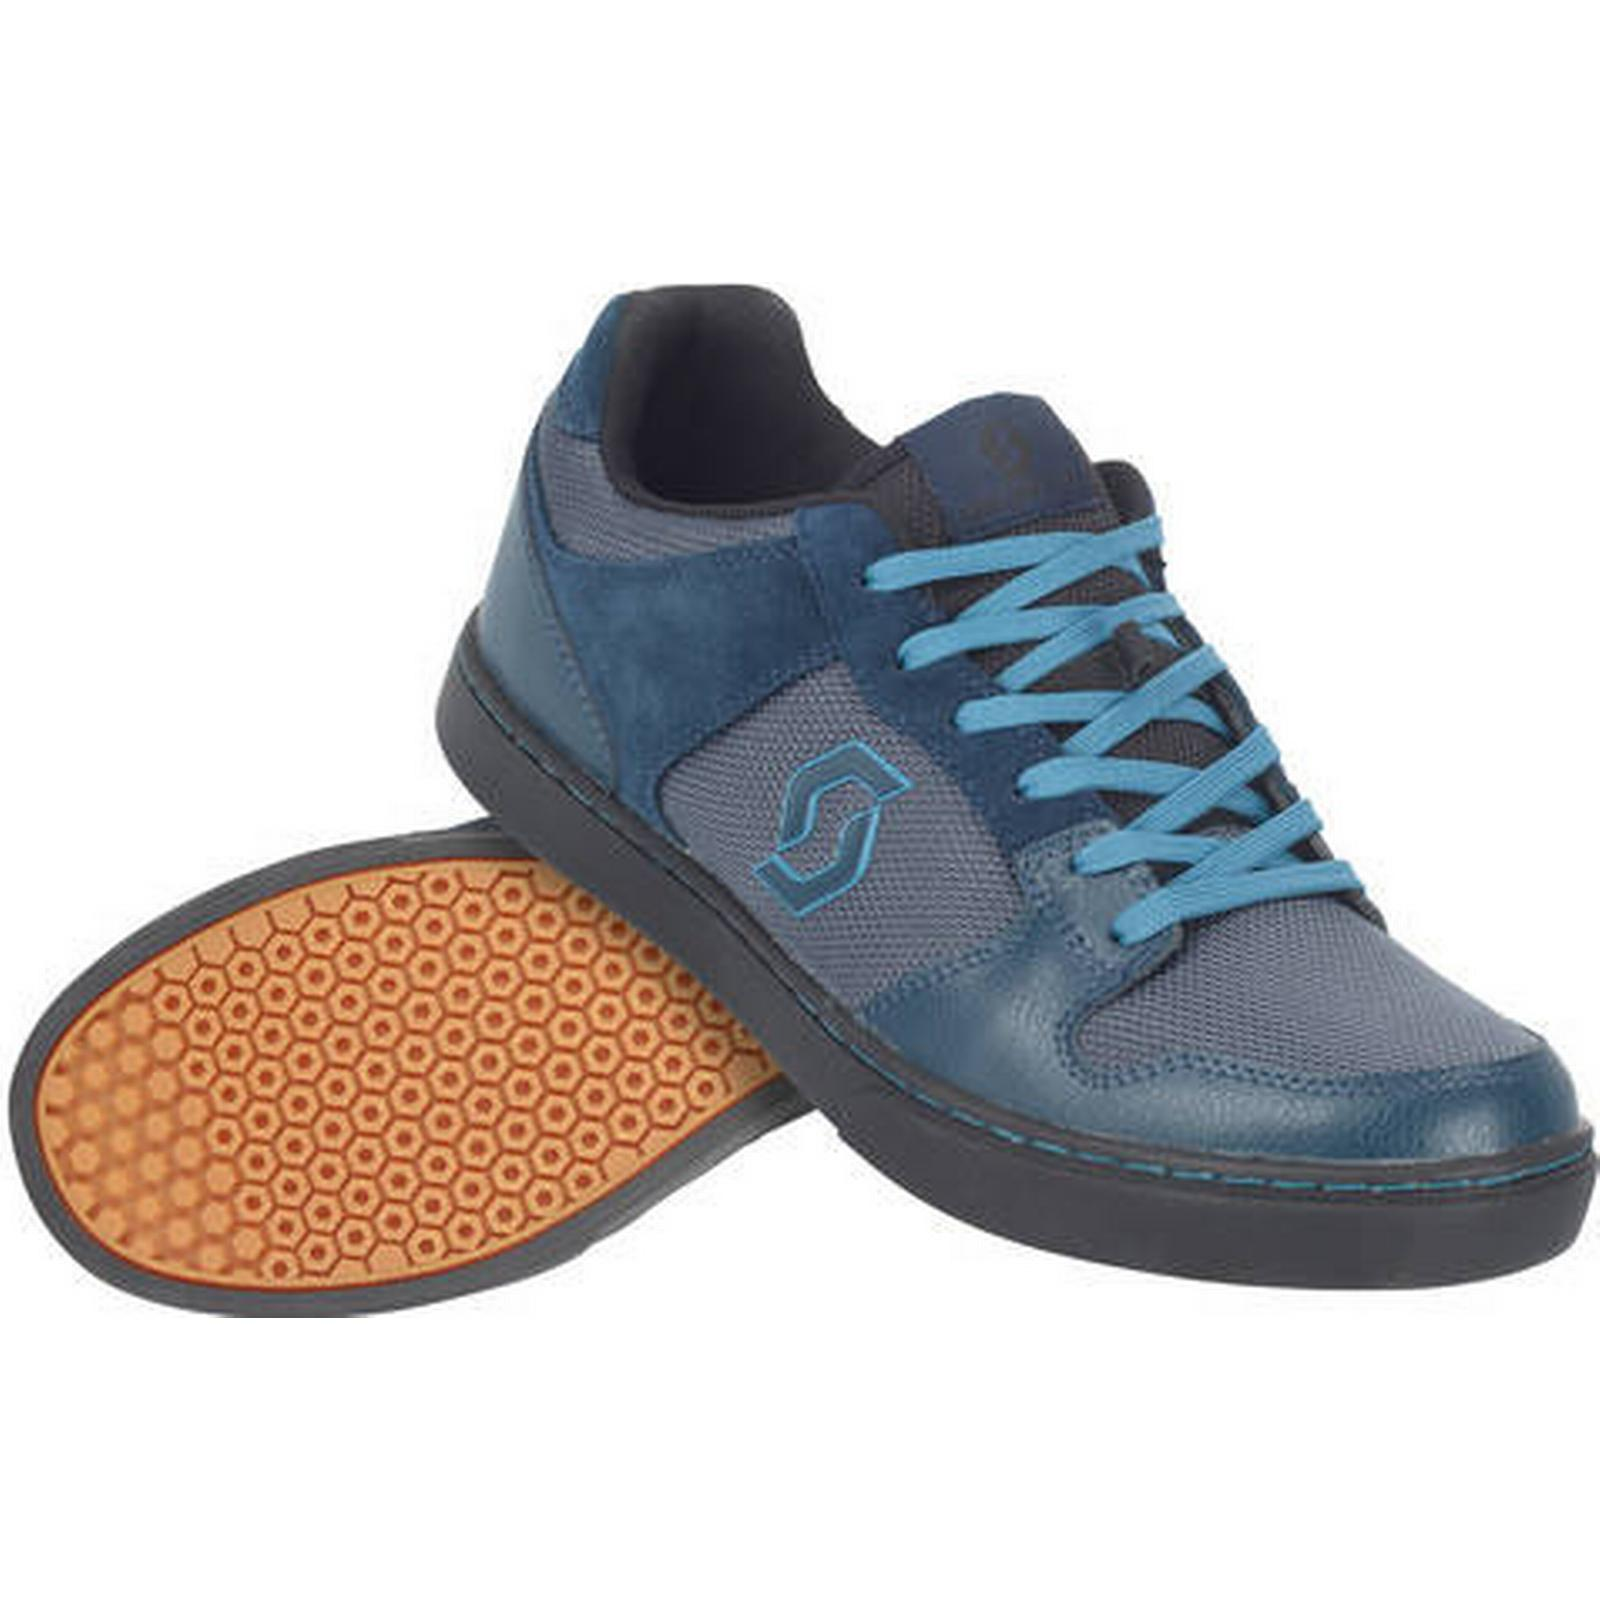 Scott FR 10 Flat Cycling 43 Shoes | Blue/Black - 43 Cycling f3dc2f